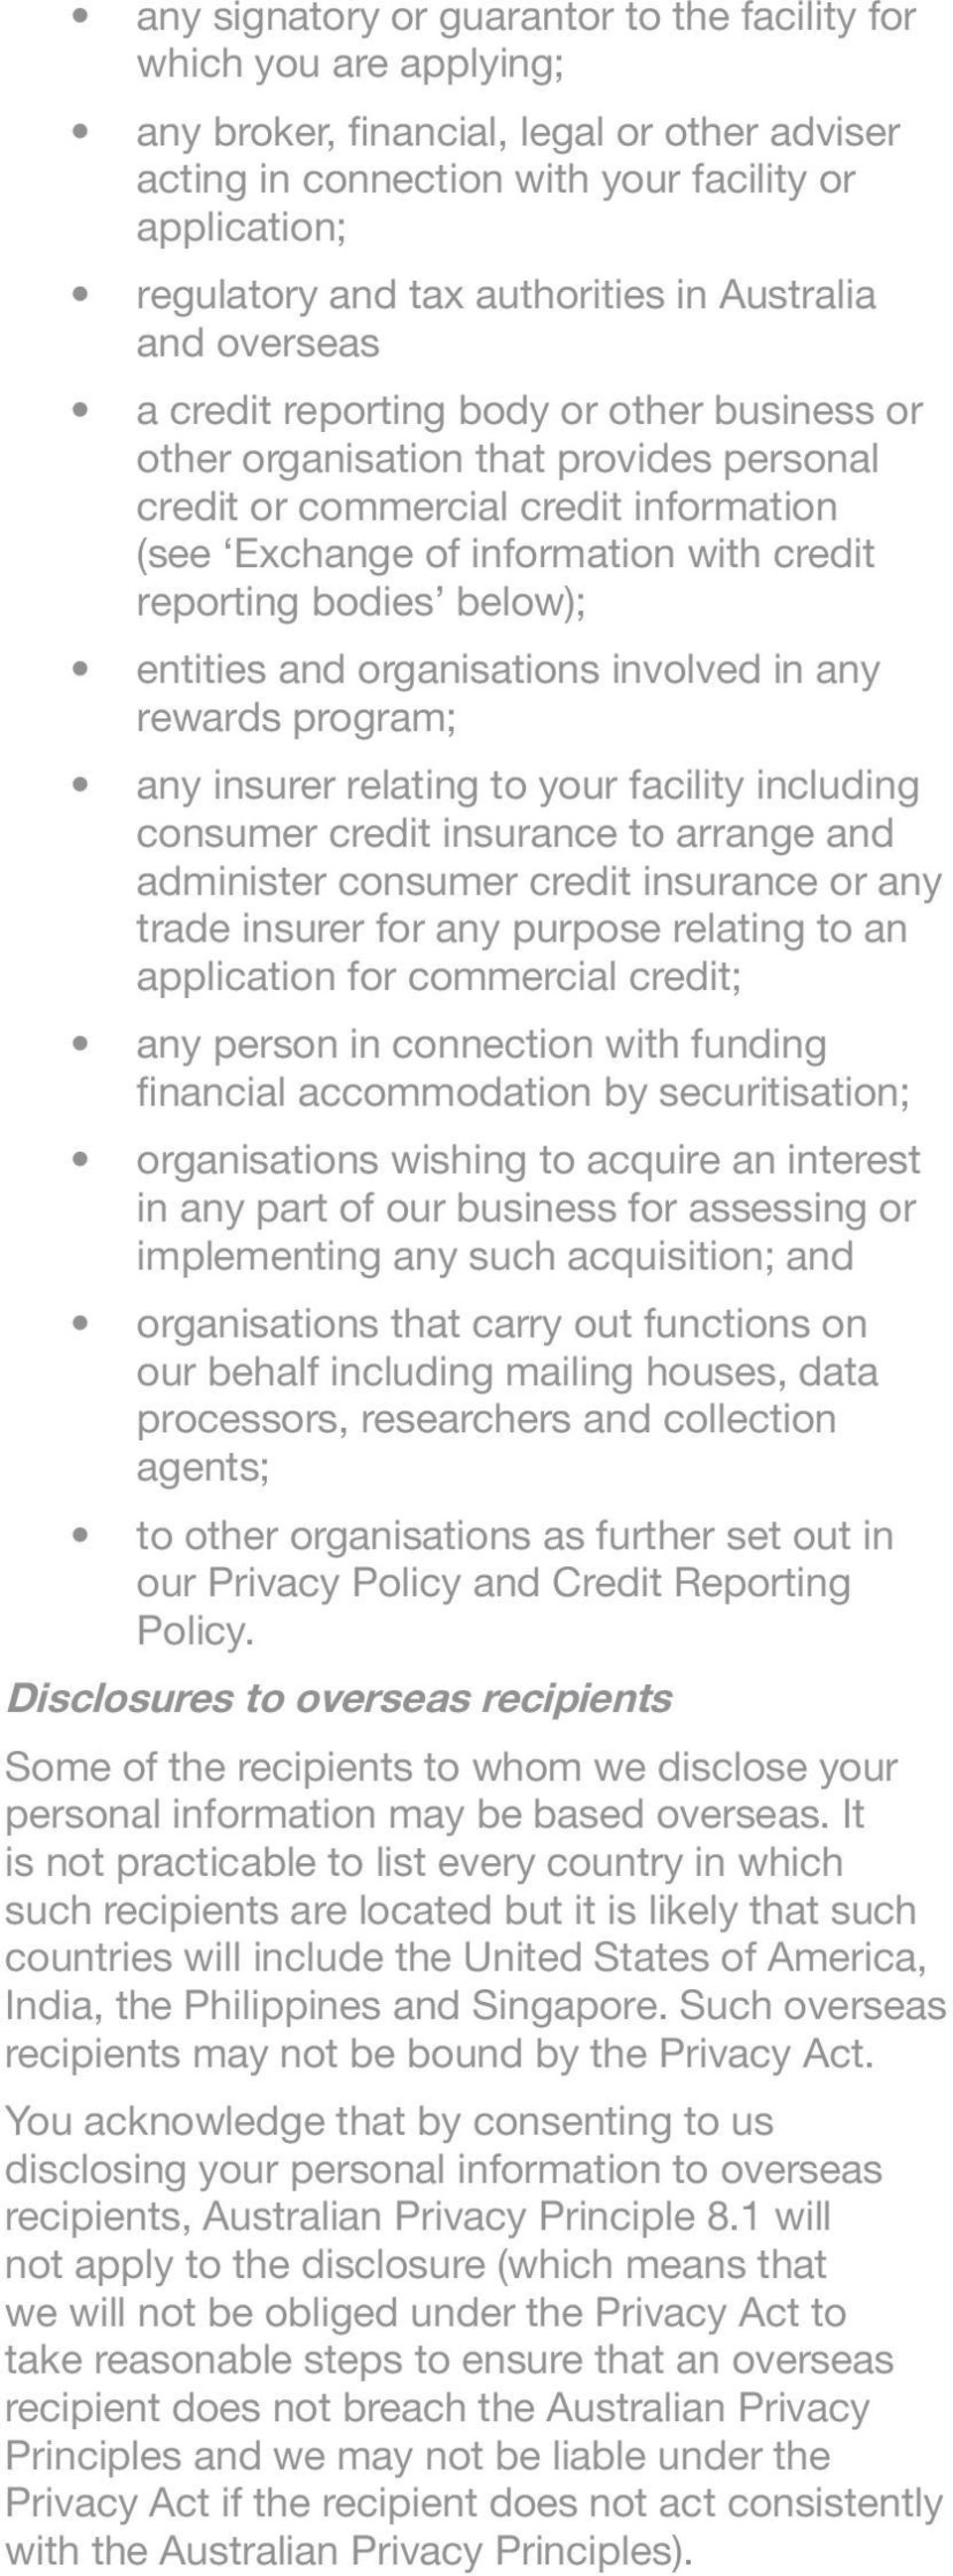 credit reporting bodies below); entities and organisations involved in any rewards program; any insurer relating to your facility including consumer credit insurance to arrange and administer